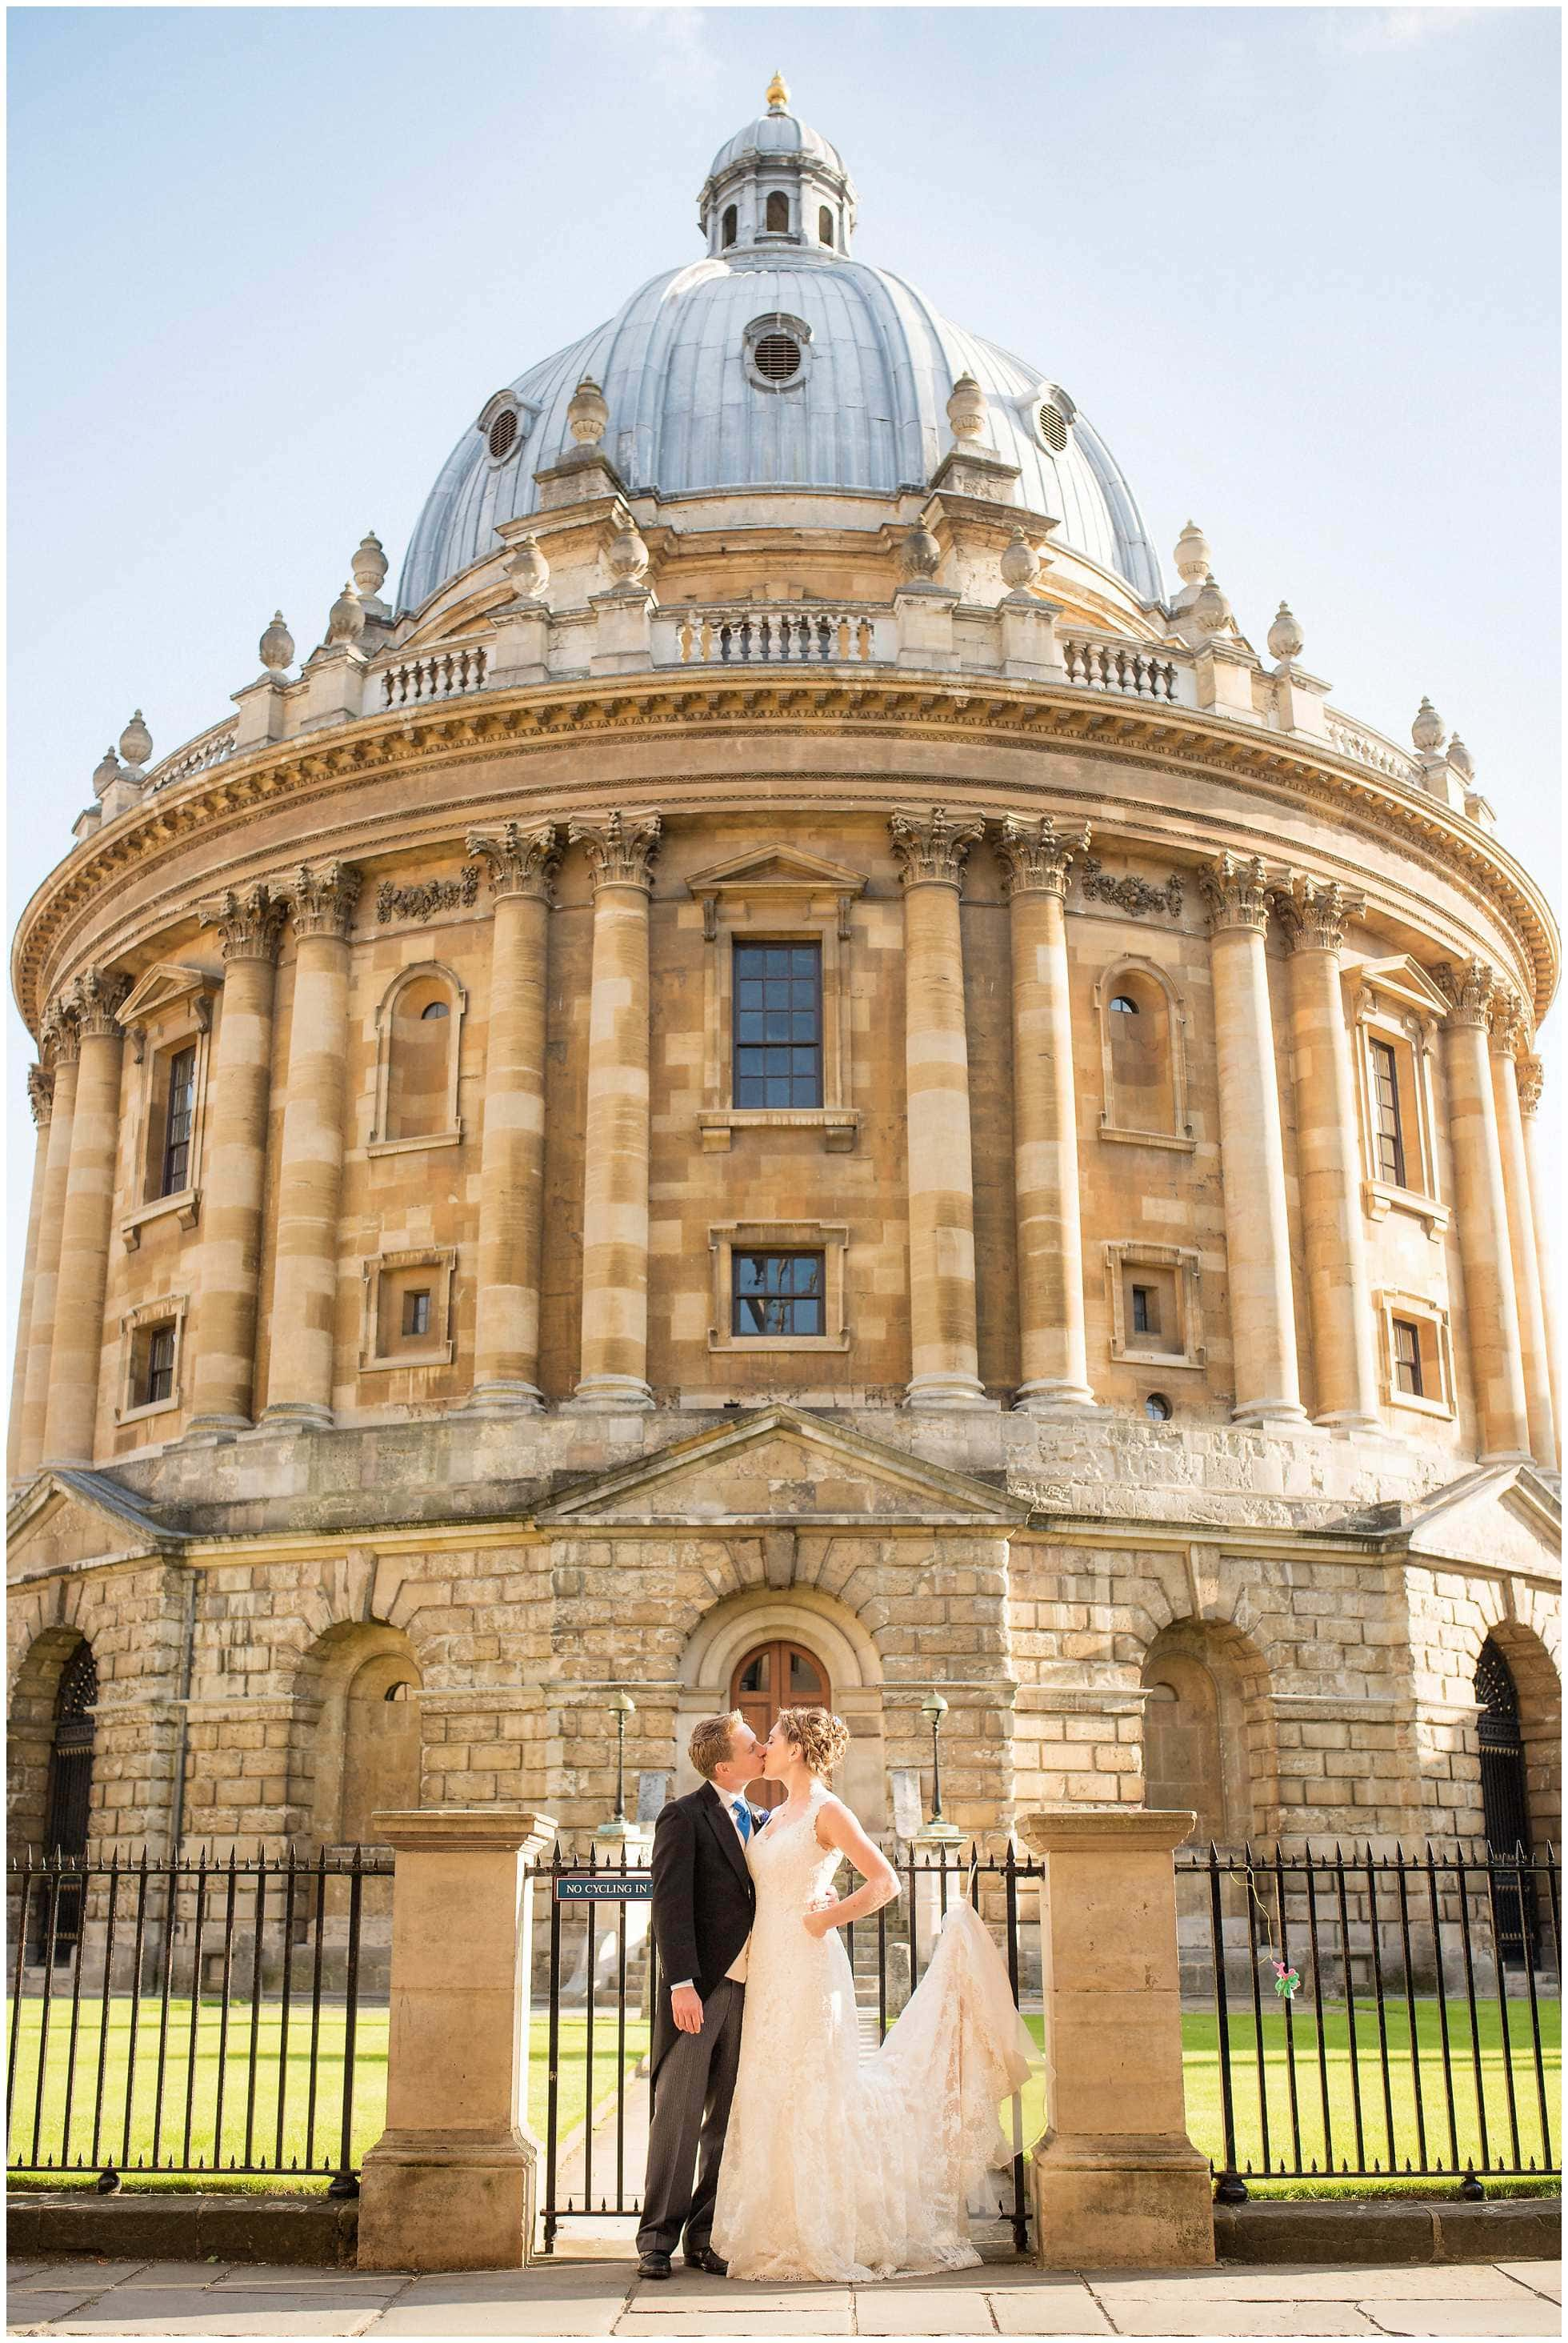 Radcliffe Camera Wedding Photography